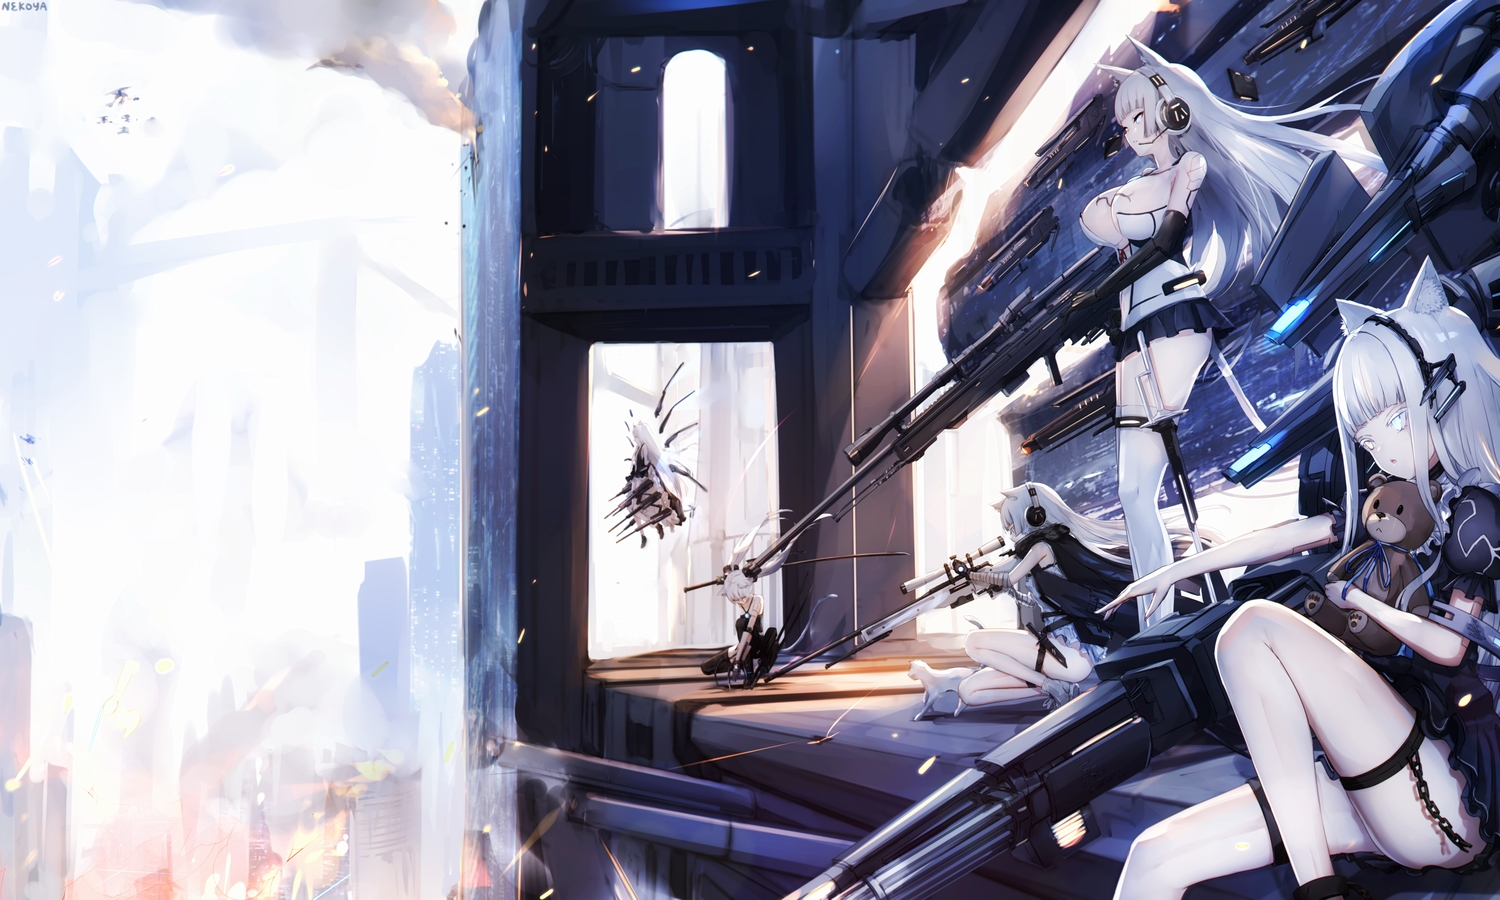 animal animal_ears anthropomorphism awp_(dyolf) bicolored_eyes breasts building cat catgirl dress dyolf girls_frontline group gun headphones knife long_hair original signed tail thighhighs twintails weapon white_hair